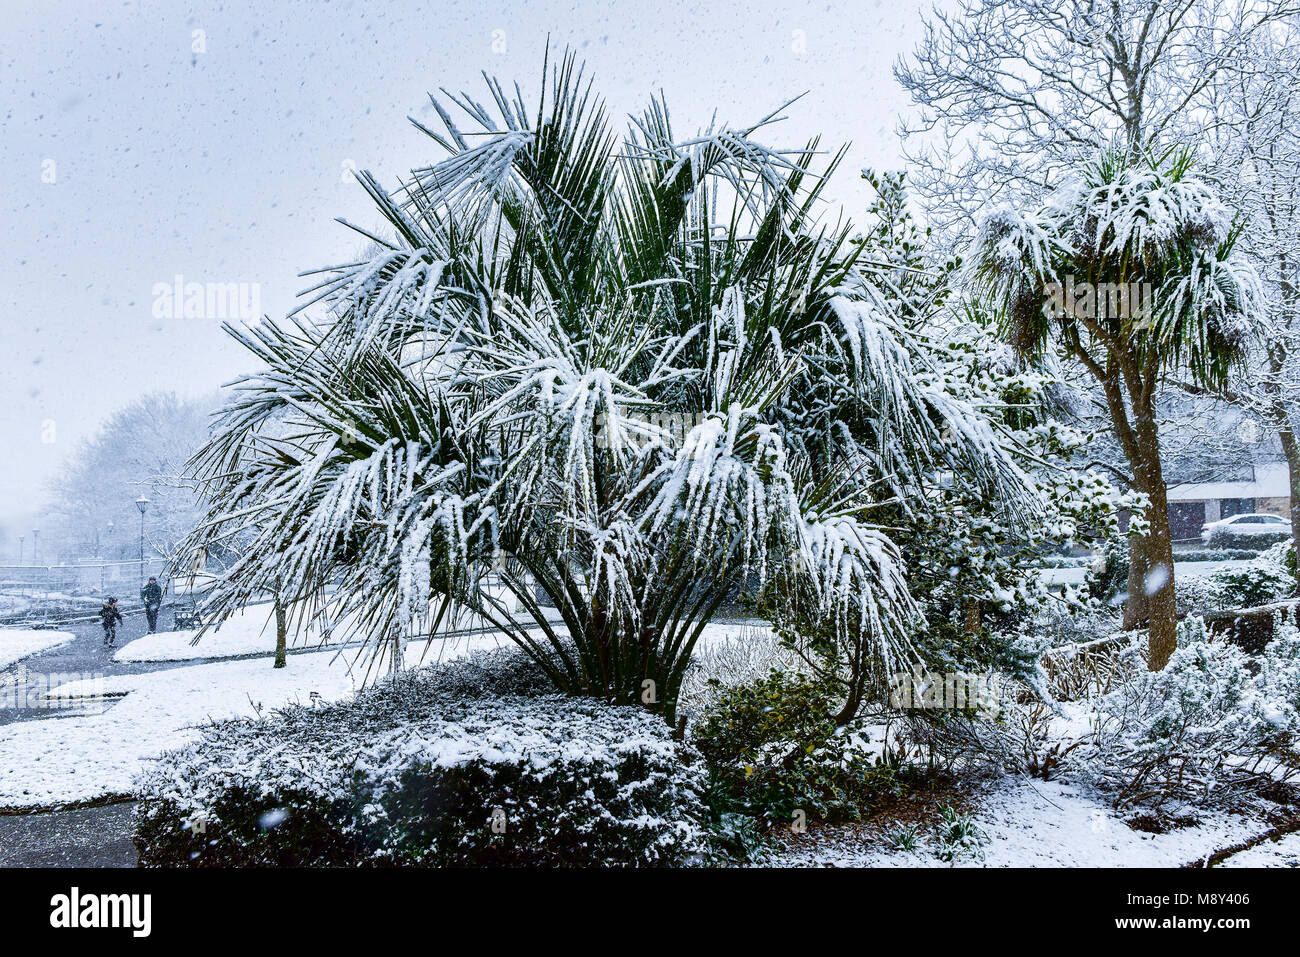 Snow fall in Trenance Park in Newquay Cornwall. - Stock Image